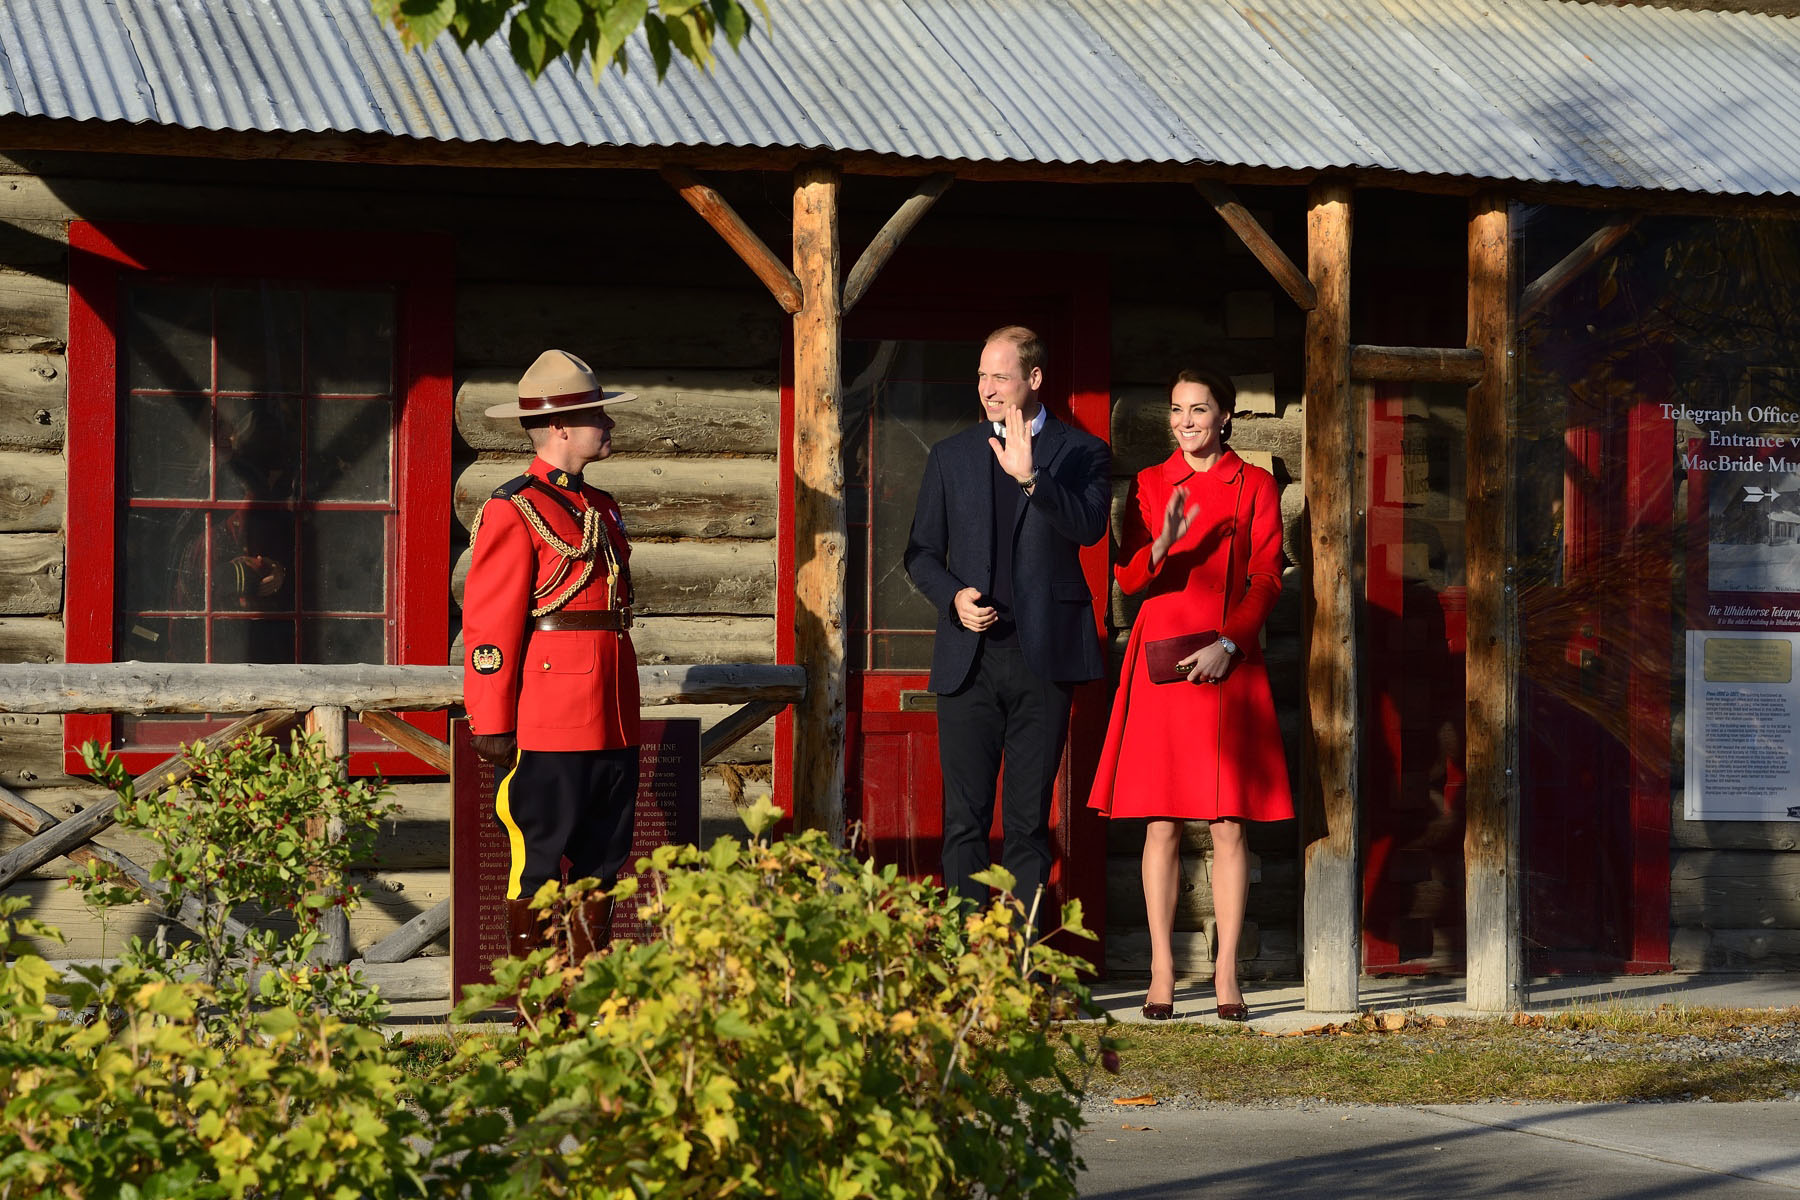 Their Royal Highnesses visited the MacBride Museum. The MacBride Museum, a fixture in downtown Whitehorse since 1952, showcases Yukon's history with a focus on the role of Whitehorse in the development of the territory.